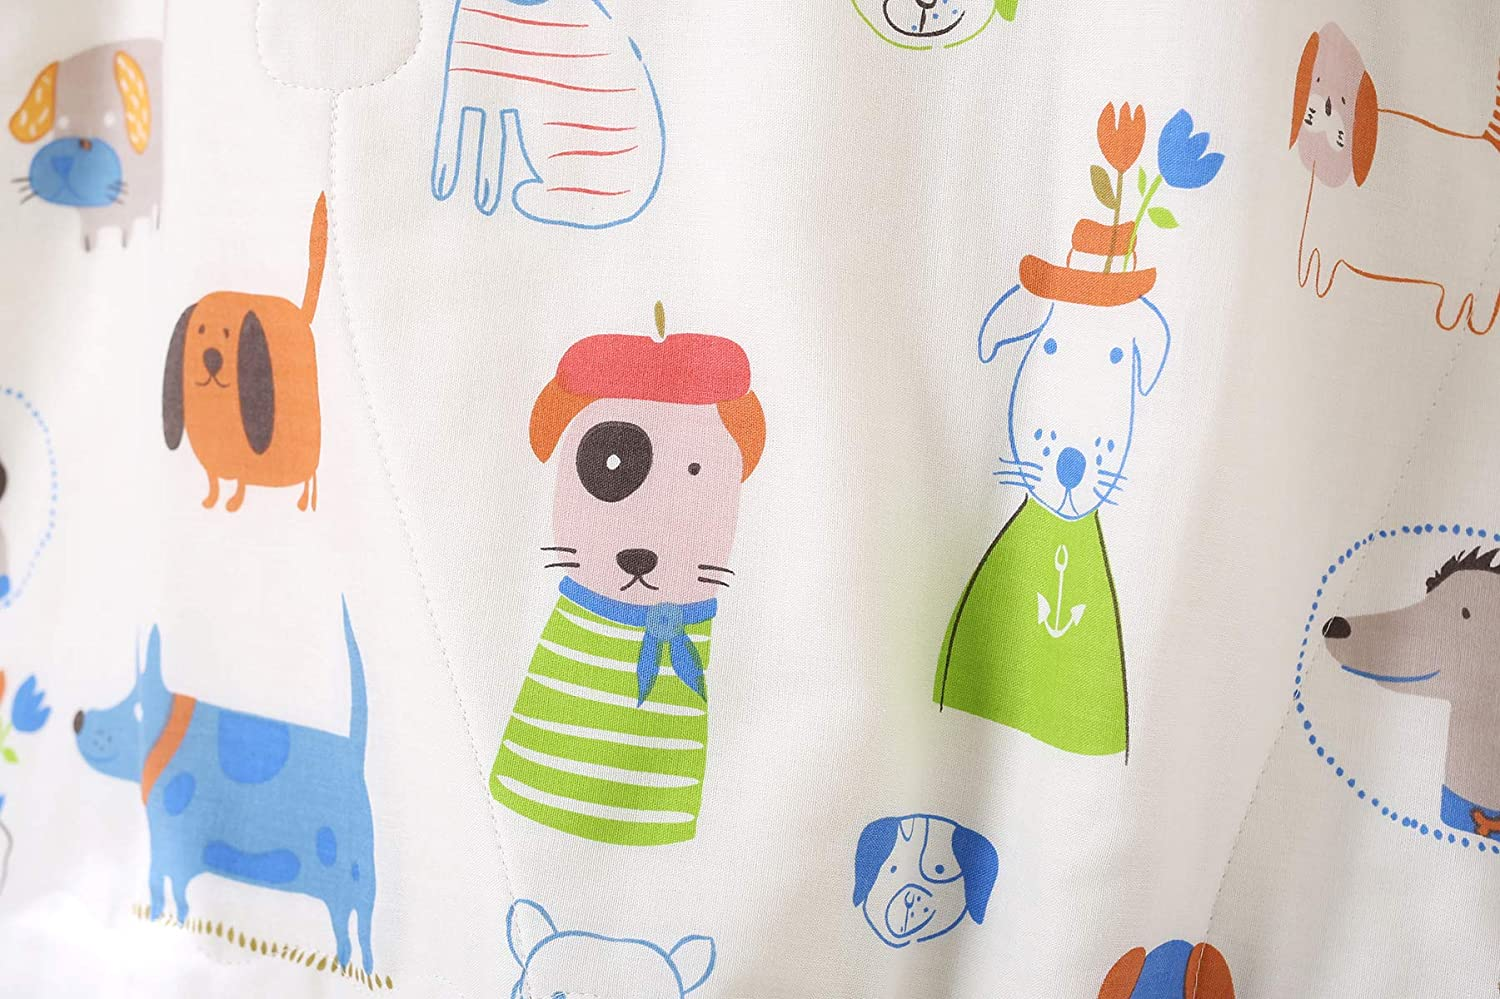 CWG Allergy-Free Soft Daycare Nursery Toddler Crib Blanket 47x47in Omelas Baby Animal Dog Nursery Muslin Organic Cotton Bed Quilt Blanket White and Sage Green Colorful Cartoon Dogs Patterned